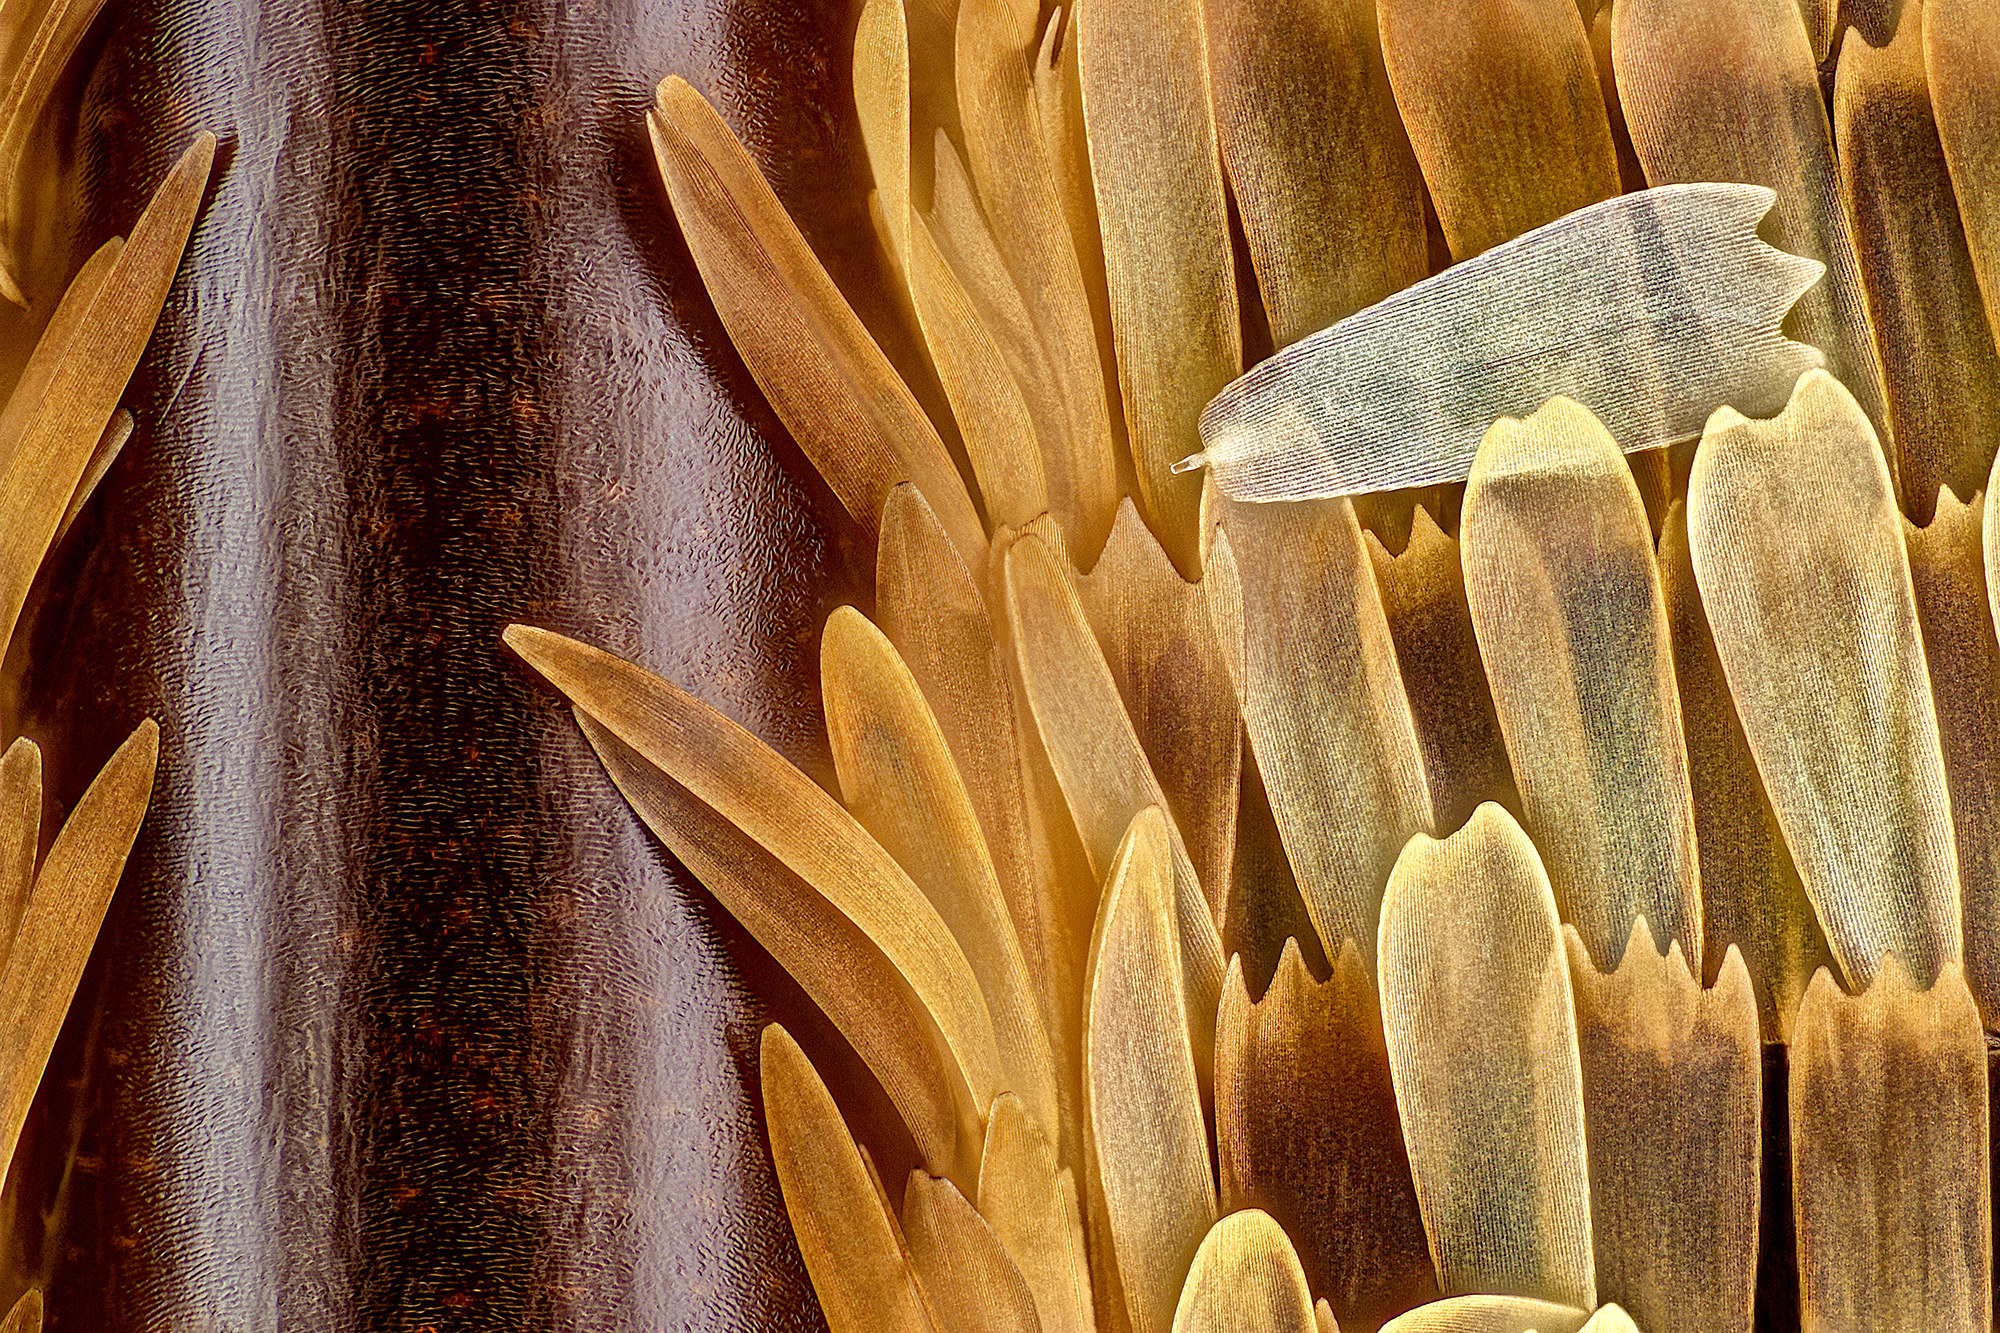 A close-up of a butterfly wing with scales